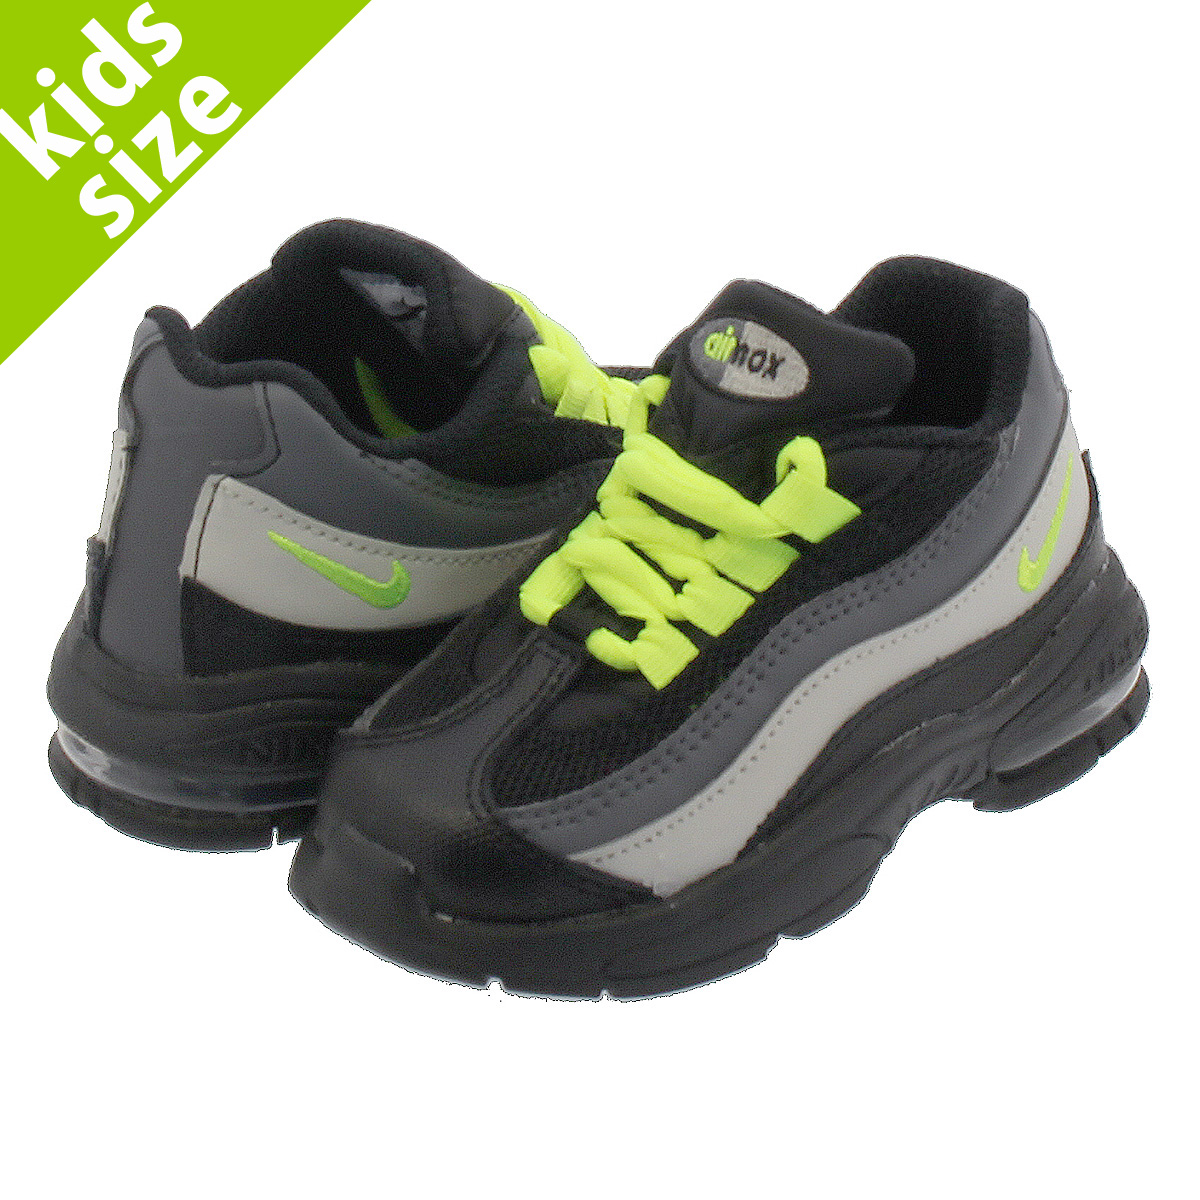 4130c8ee27 LOWTEX BIG-SMALL SHOP: NIKE AIR MAX 95 TD Kie Ney AMAX 95 TD BLACK/VOLT  905,462-022 | Rakuten Global Market